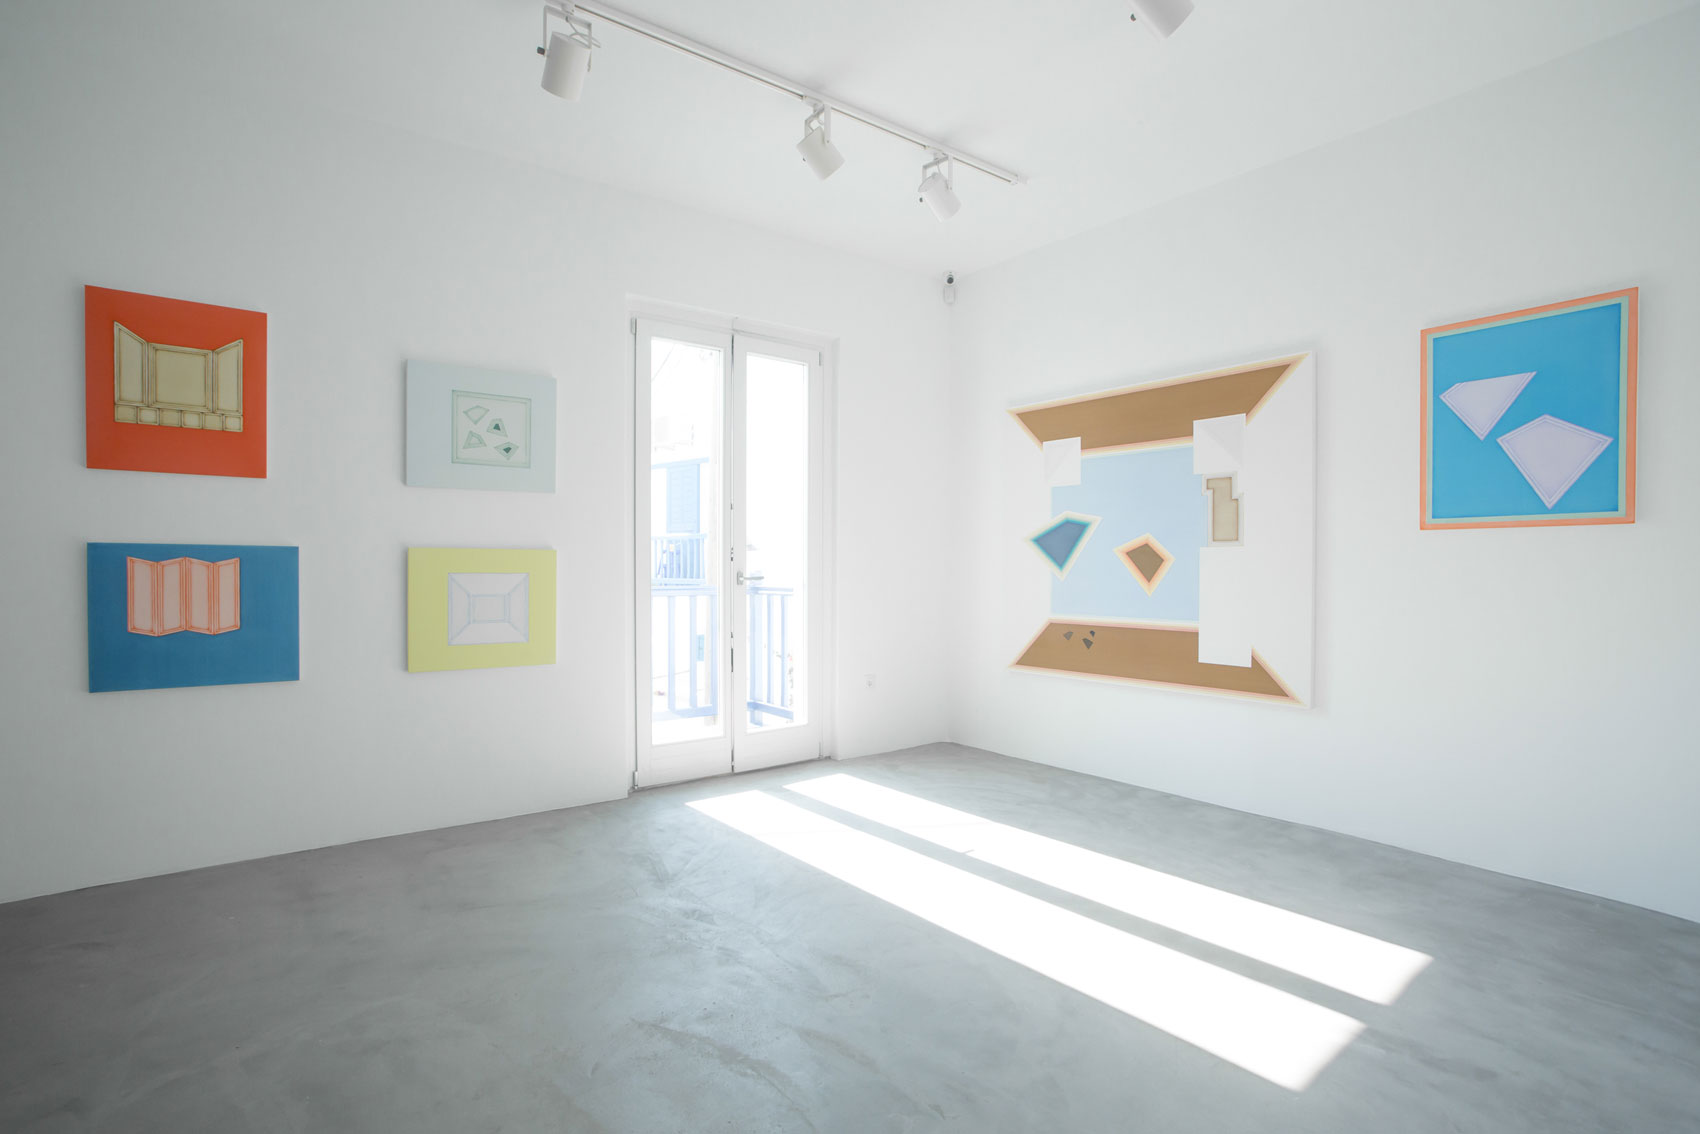 Installation view of resident artist Selma Parlour's solo exhibition Paradoxes of the Flattened-out Cavity at Dio Horia, Mykonos. Photo: Pinelopi Gerasimou.